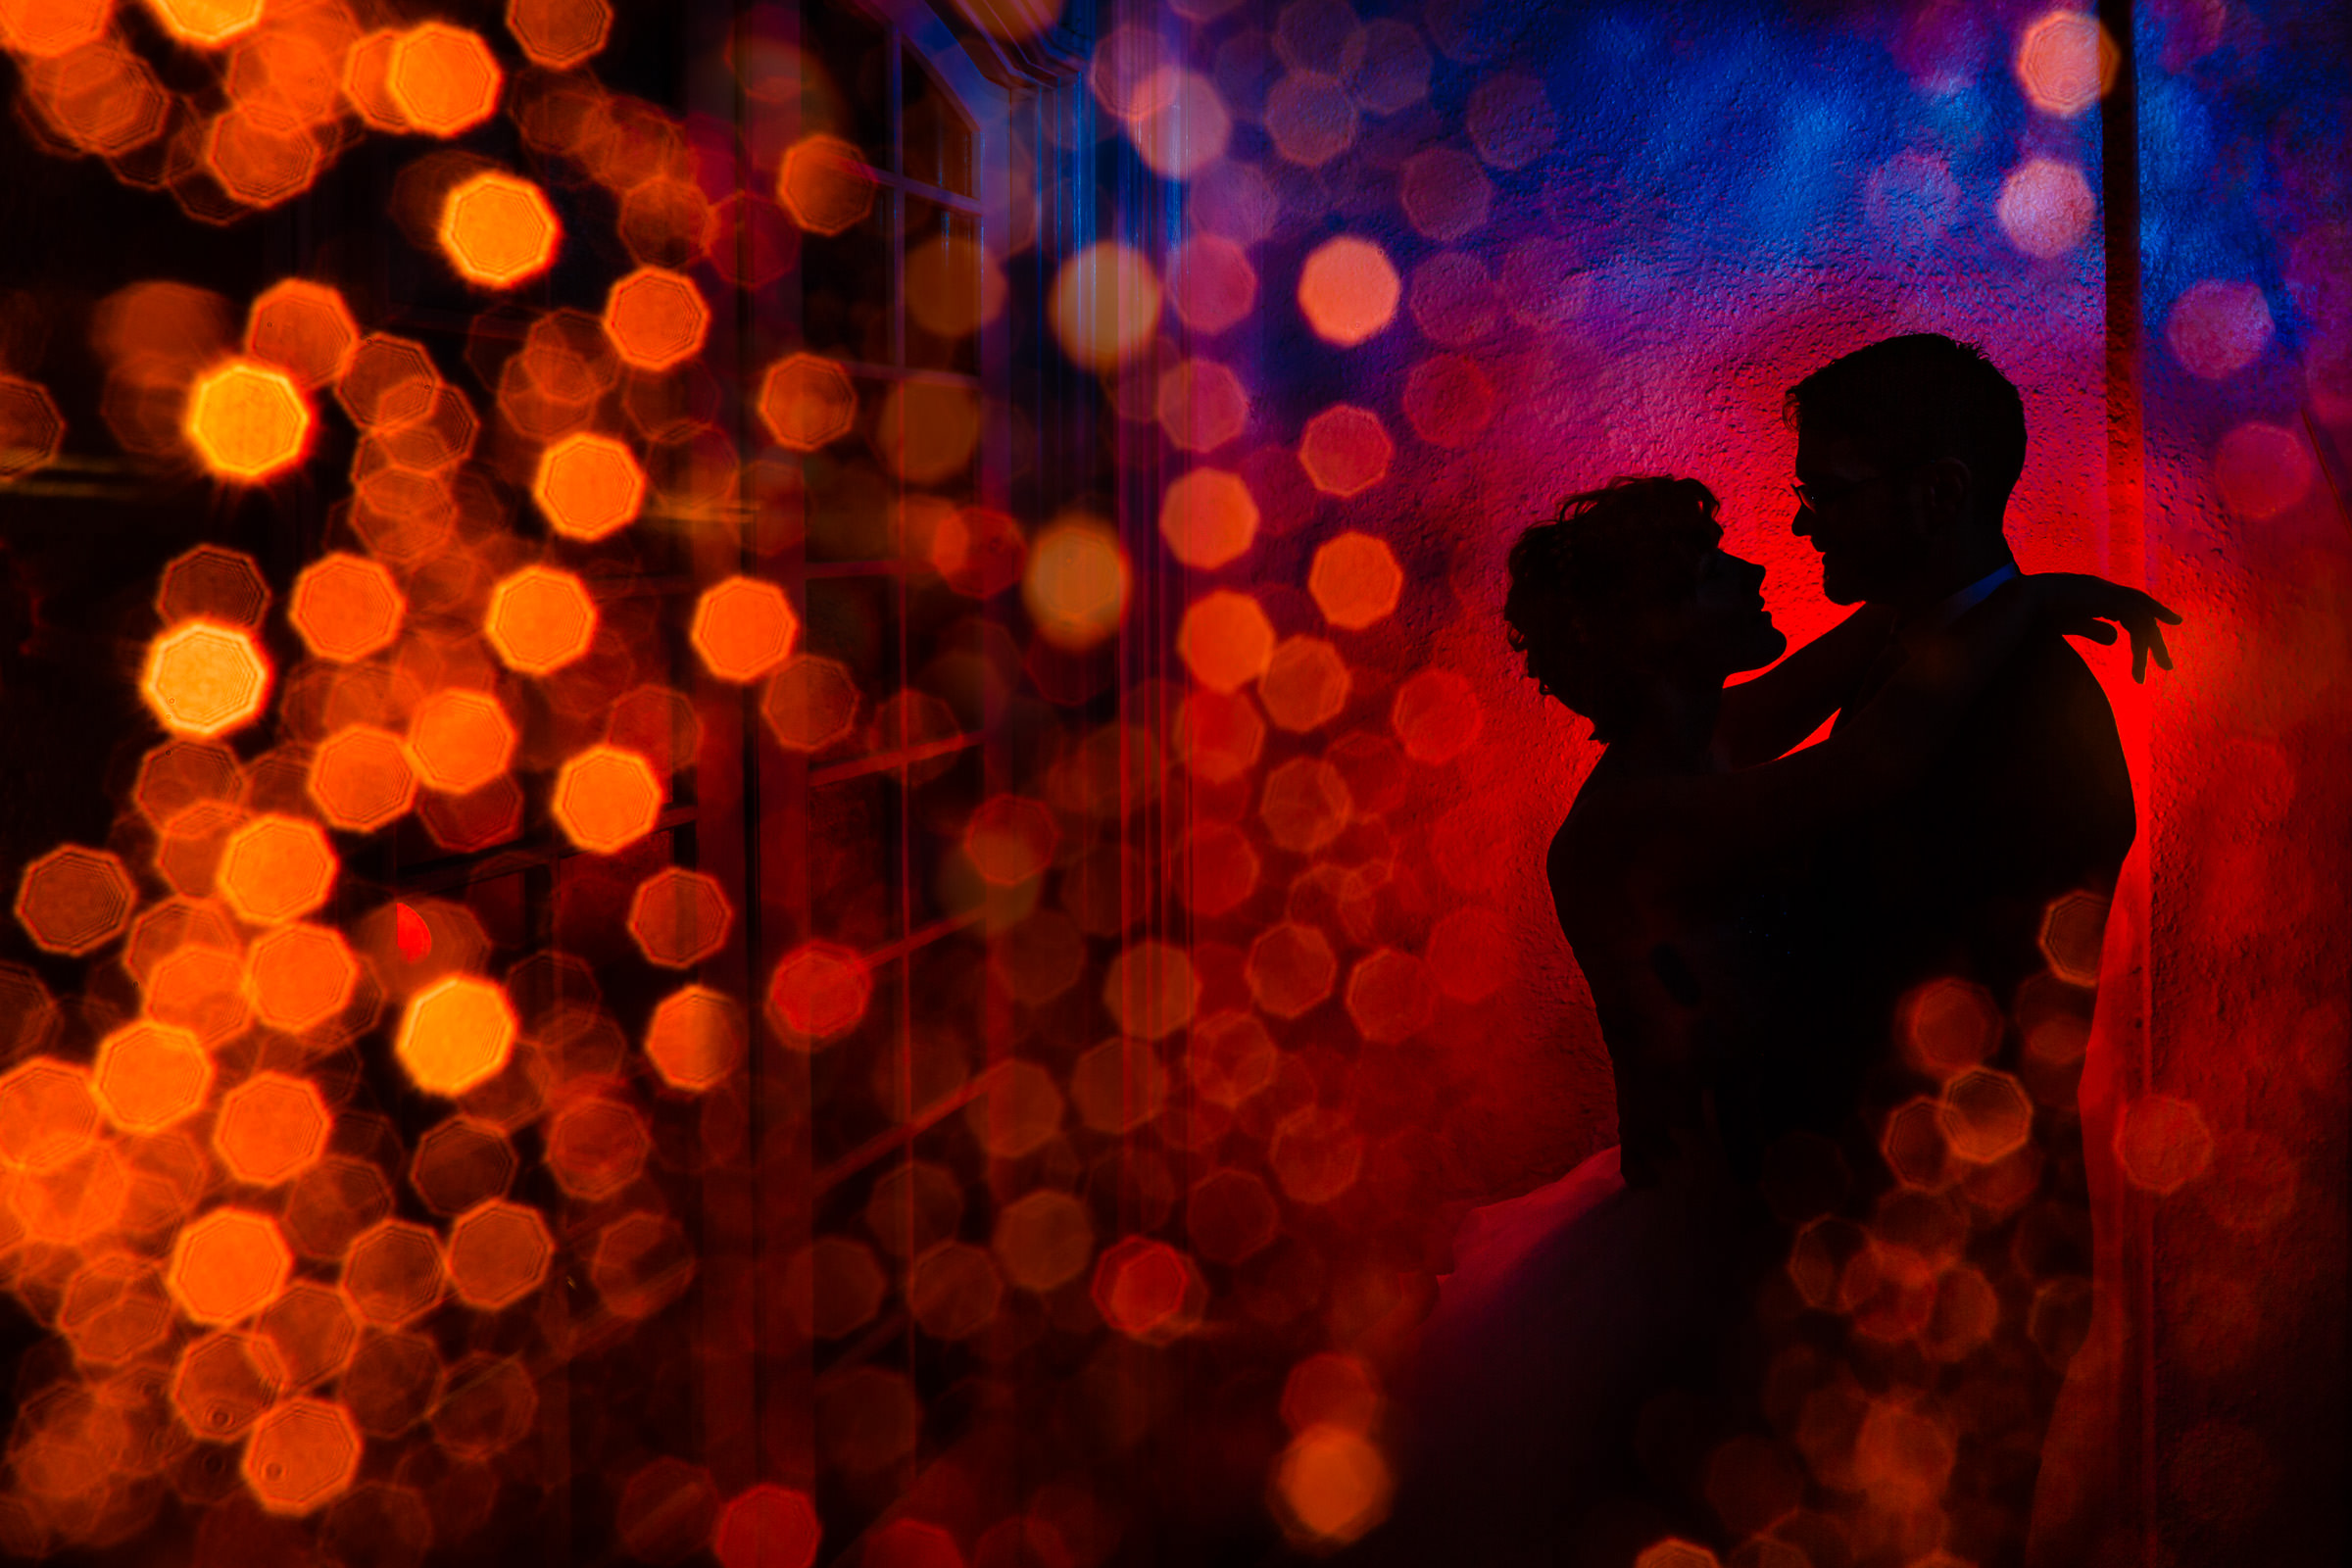 Silhouette of couple embracing with bokeh effects - photo by JOS & TREE